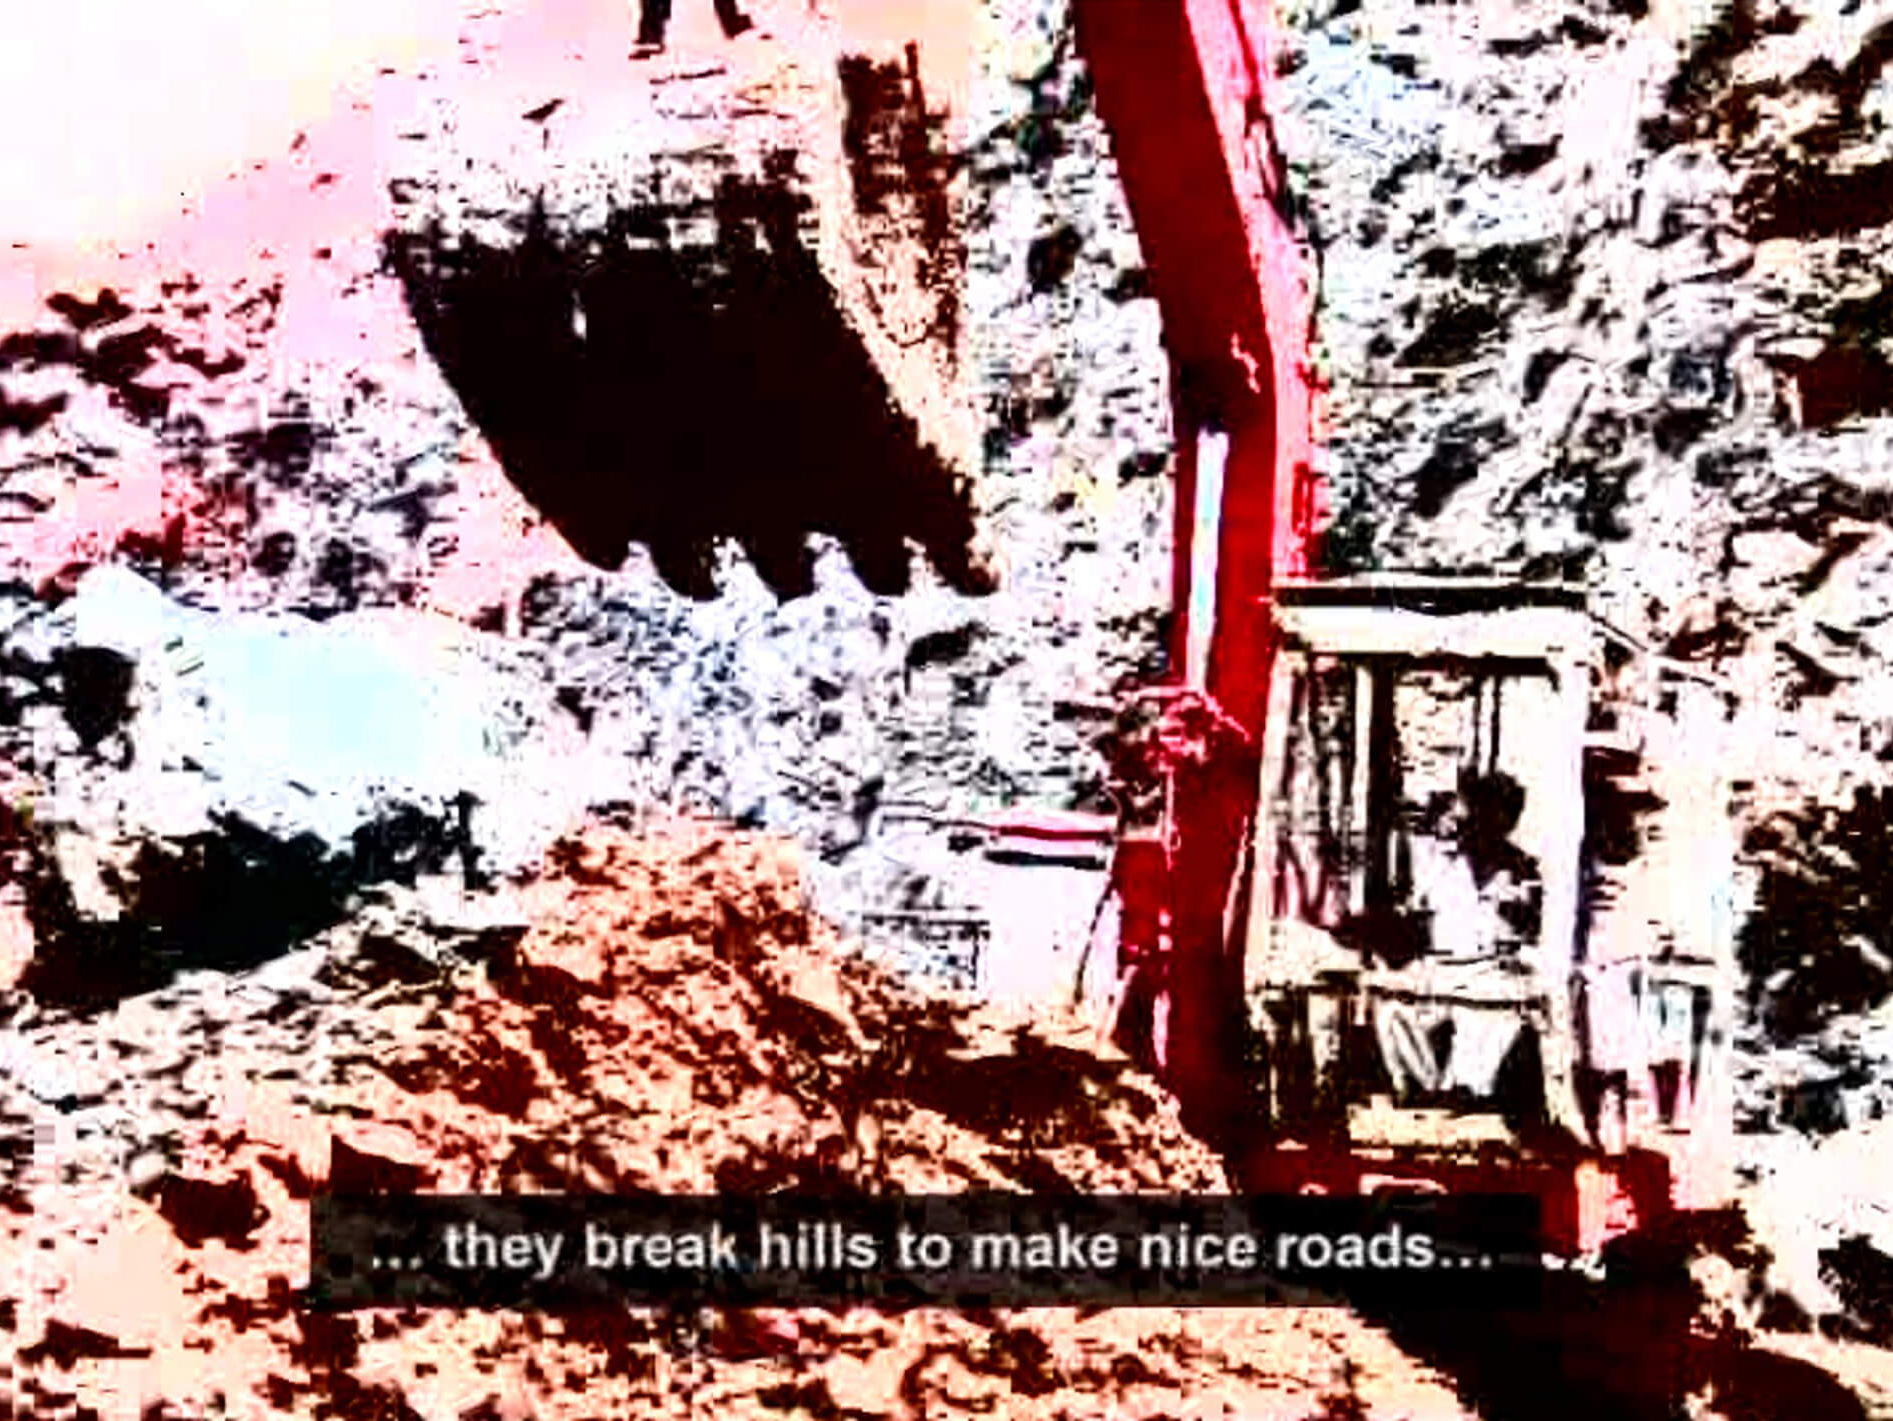 Earth mover at work in Shanghai Tales | Video Art by Indian Contemporary Artists | Sharmila Samant | STIRworld